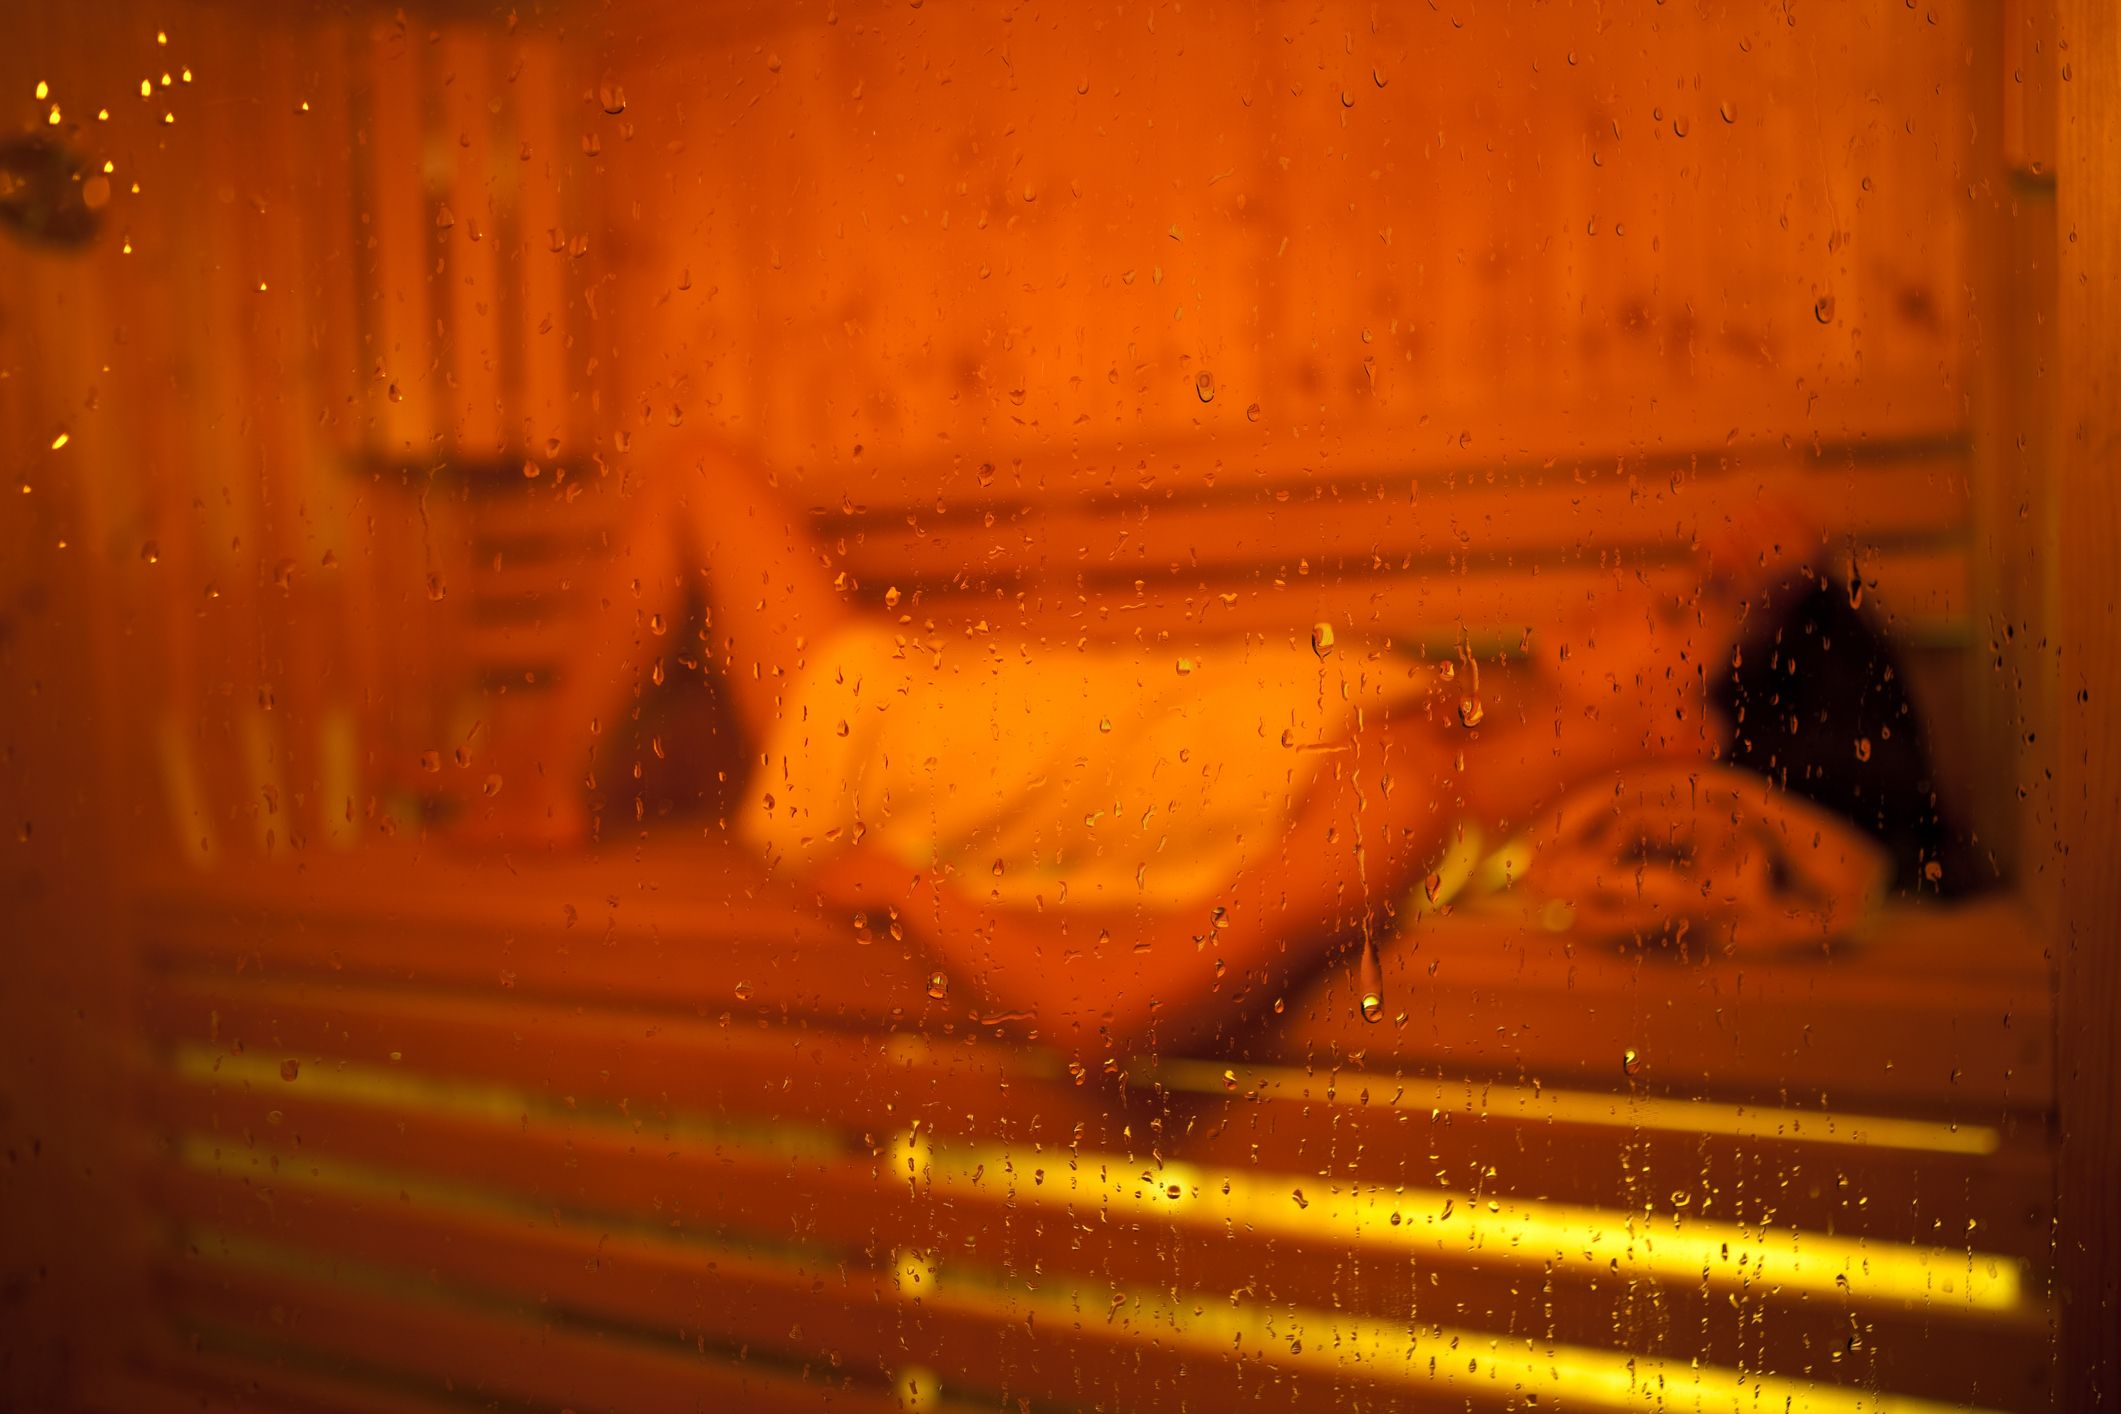 Steam Room Vs Sauna Health Benefits Risks Which Is Better